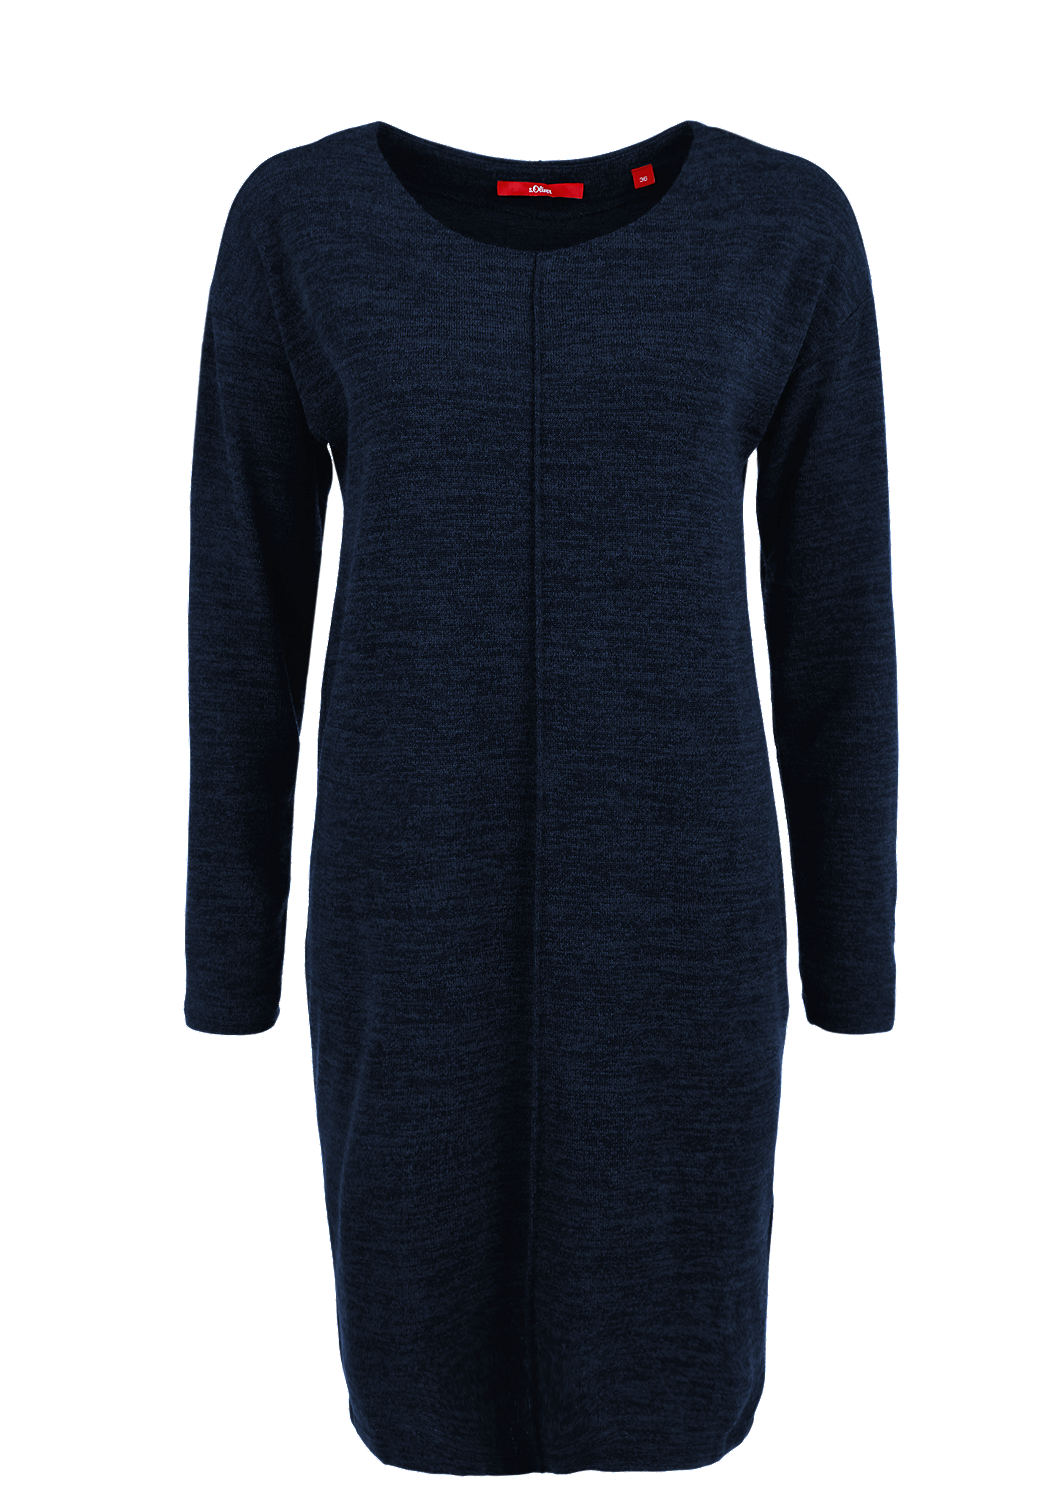 Buy Knitted dress with darts   s.Oliver shop dcfdc9d14d